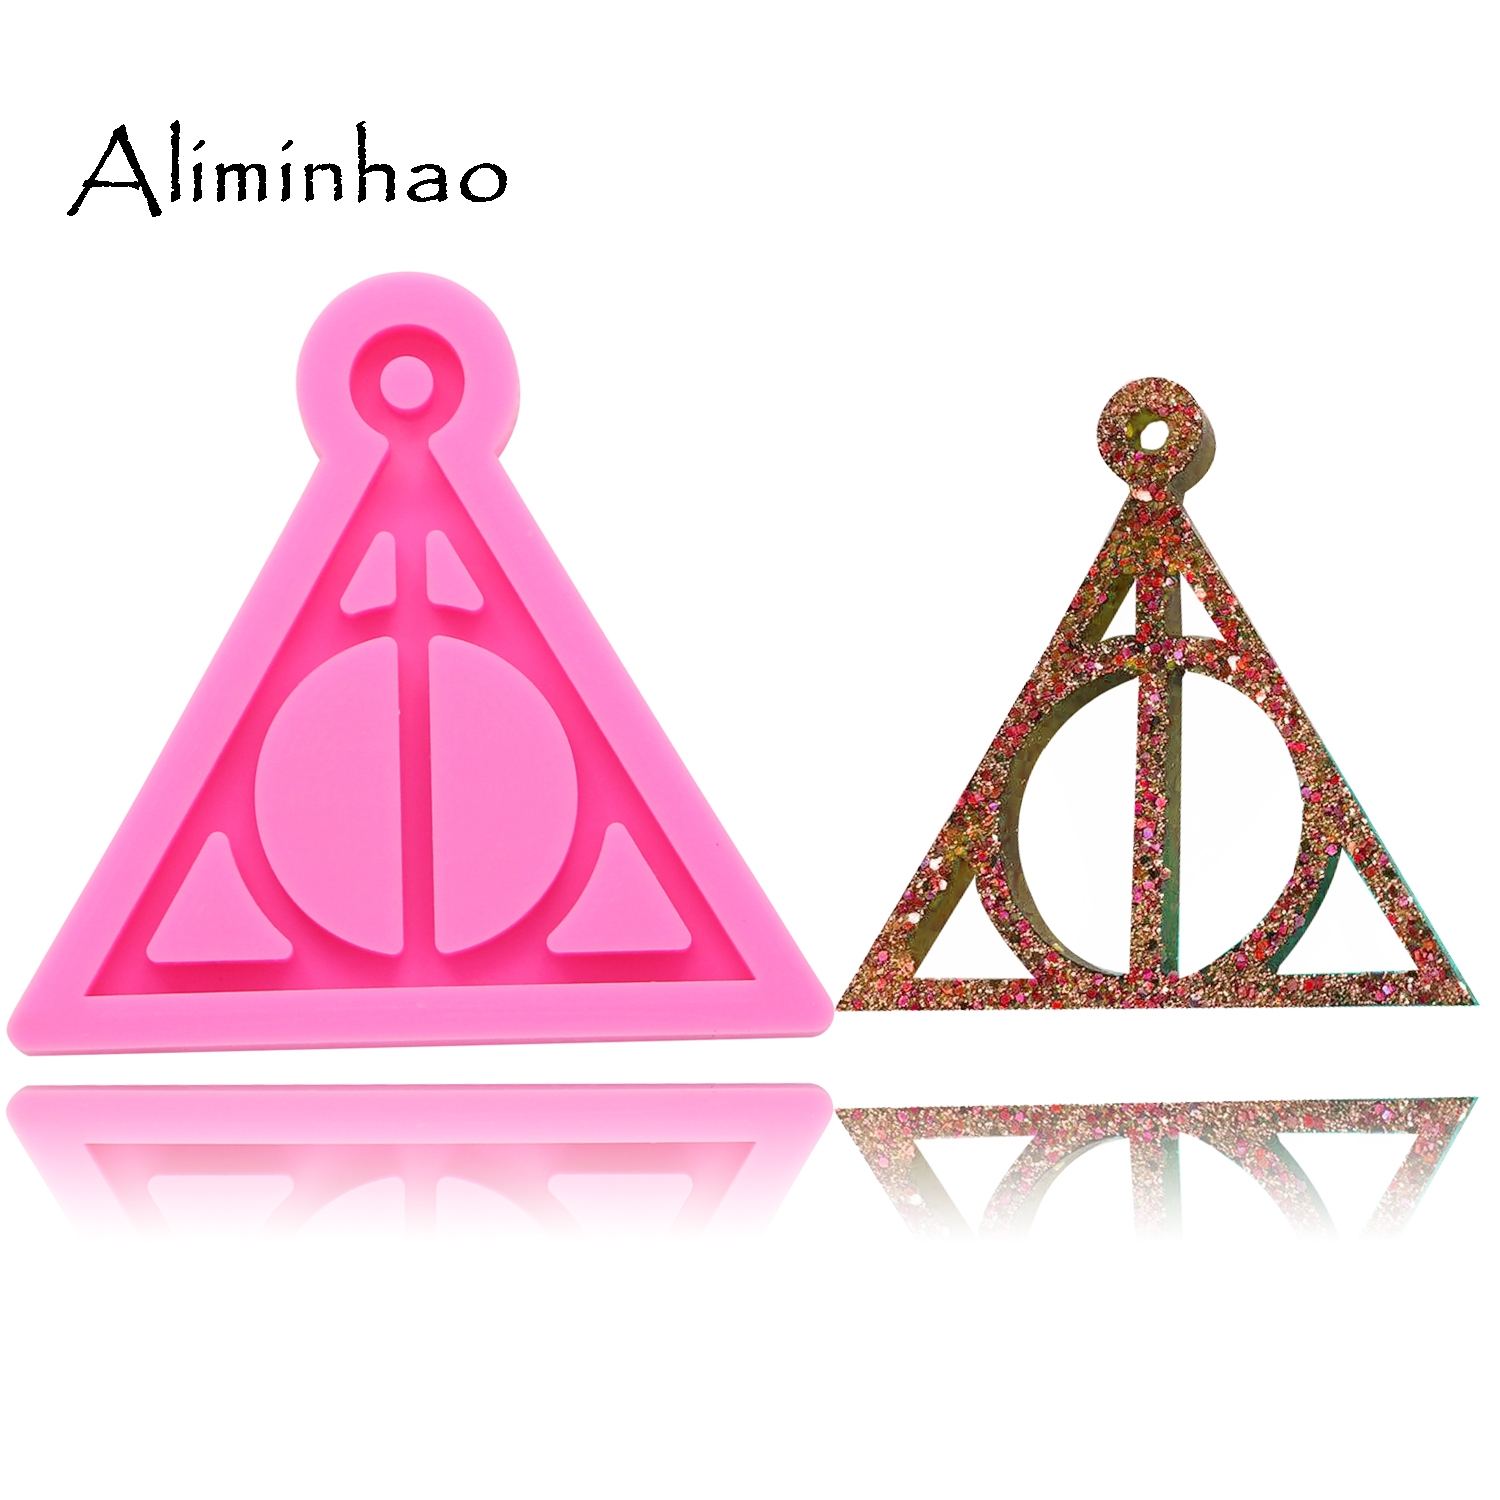 DY0085 Shiny Magic Boy Logo Keychains Mold Pendant Polymer Clay DIY Jewelry Making Glitter Epoxy Silicone Resin Mold